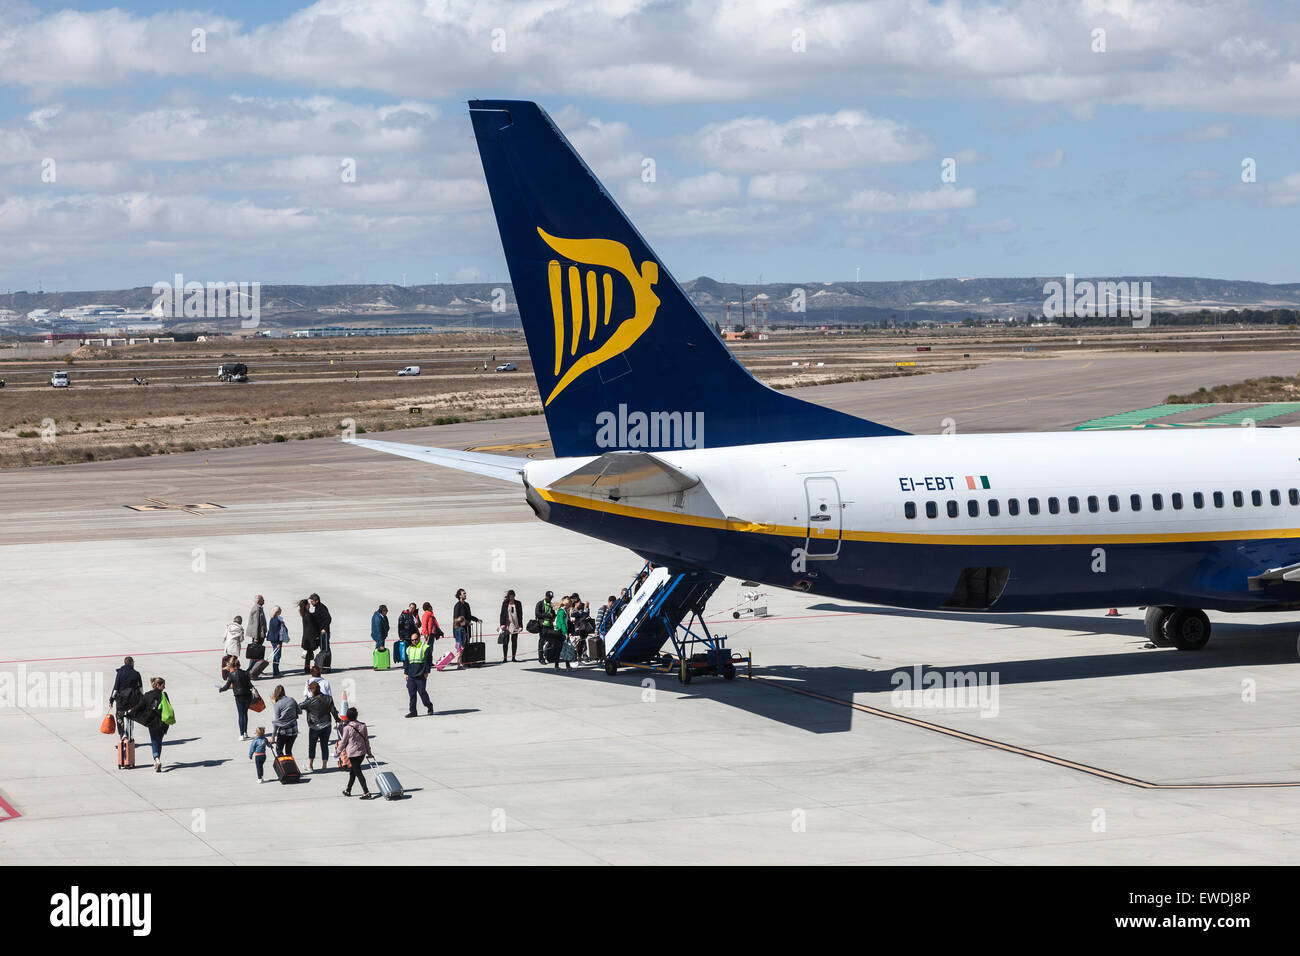 Ryanair airplane boarding at the runway of the International Airport of Zaragoza, Province of Aragon, Spain - Stock Image